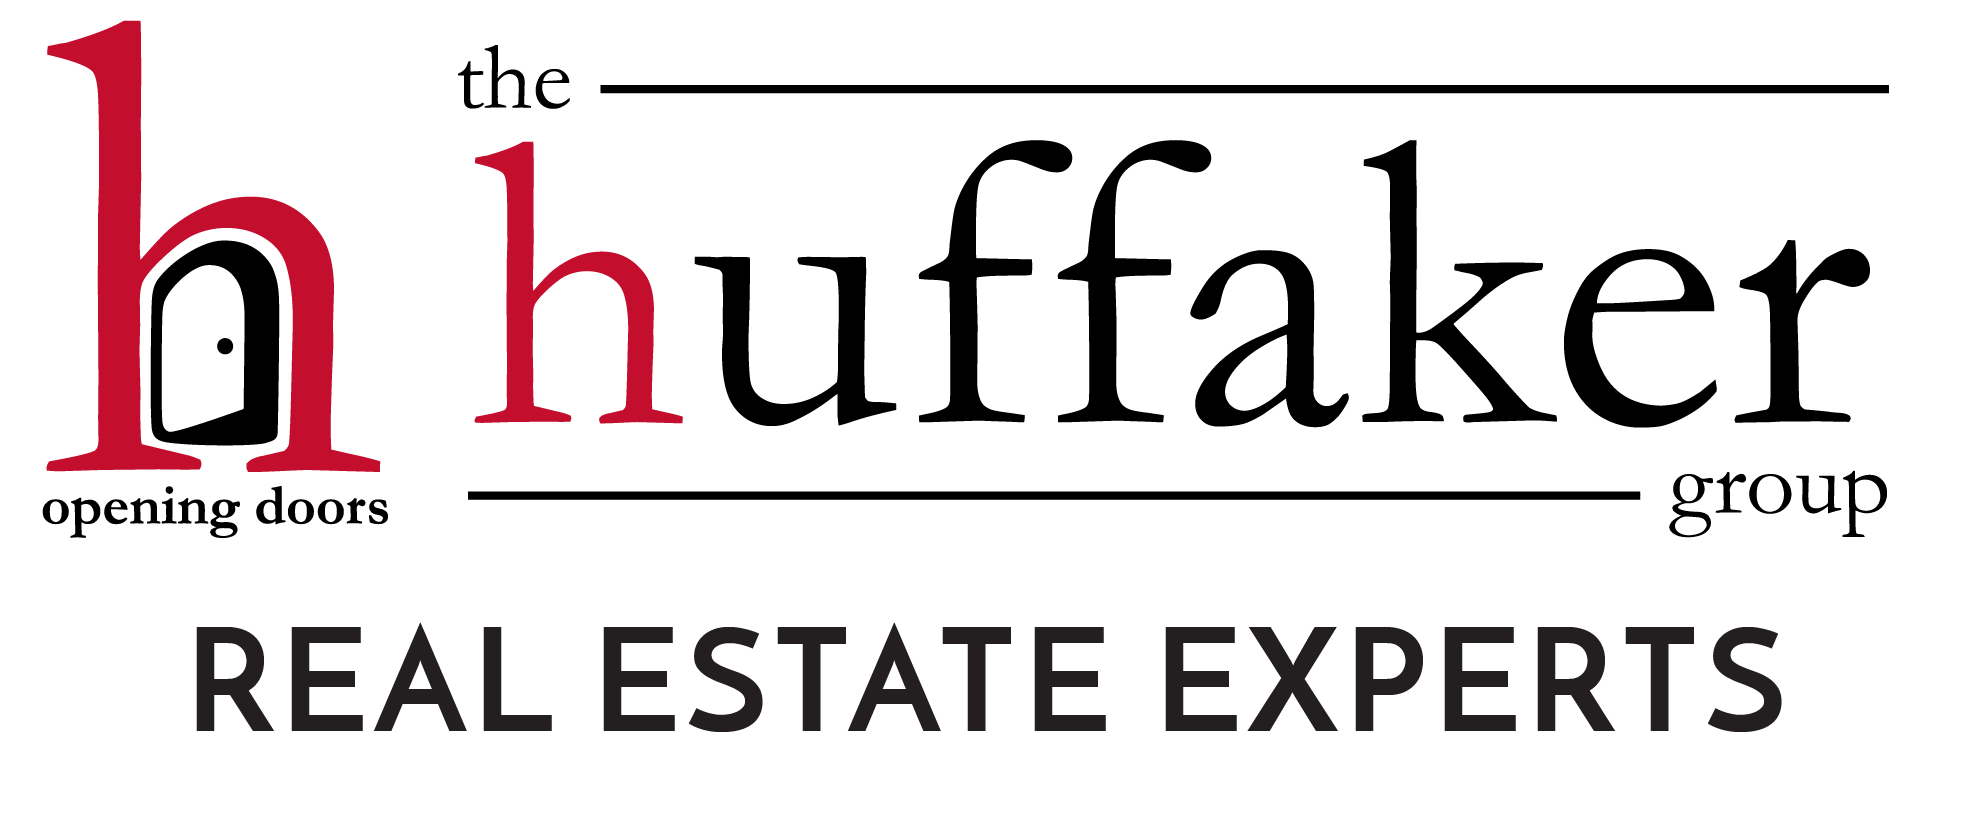 The Huffaker Group logo